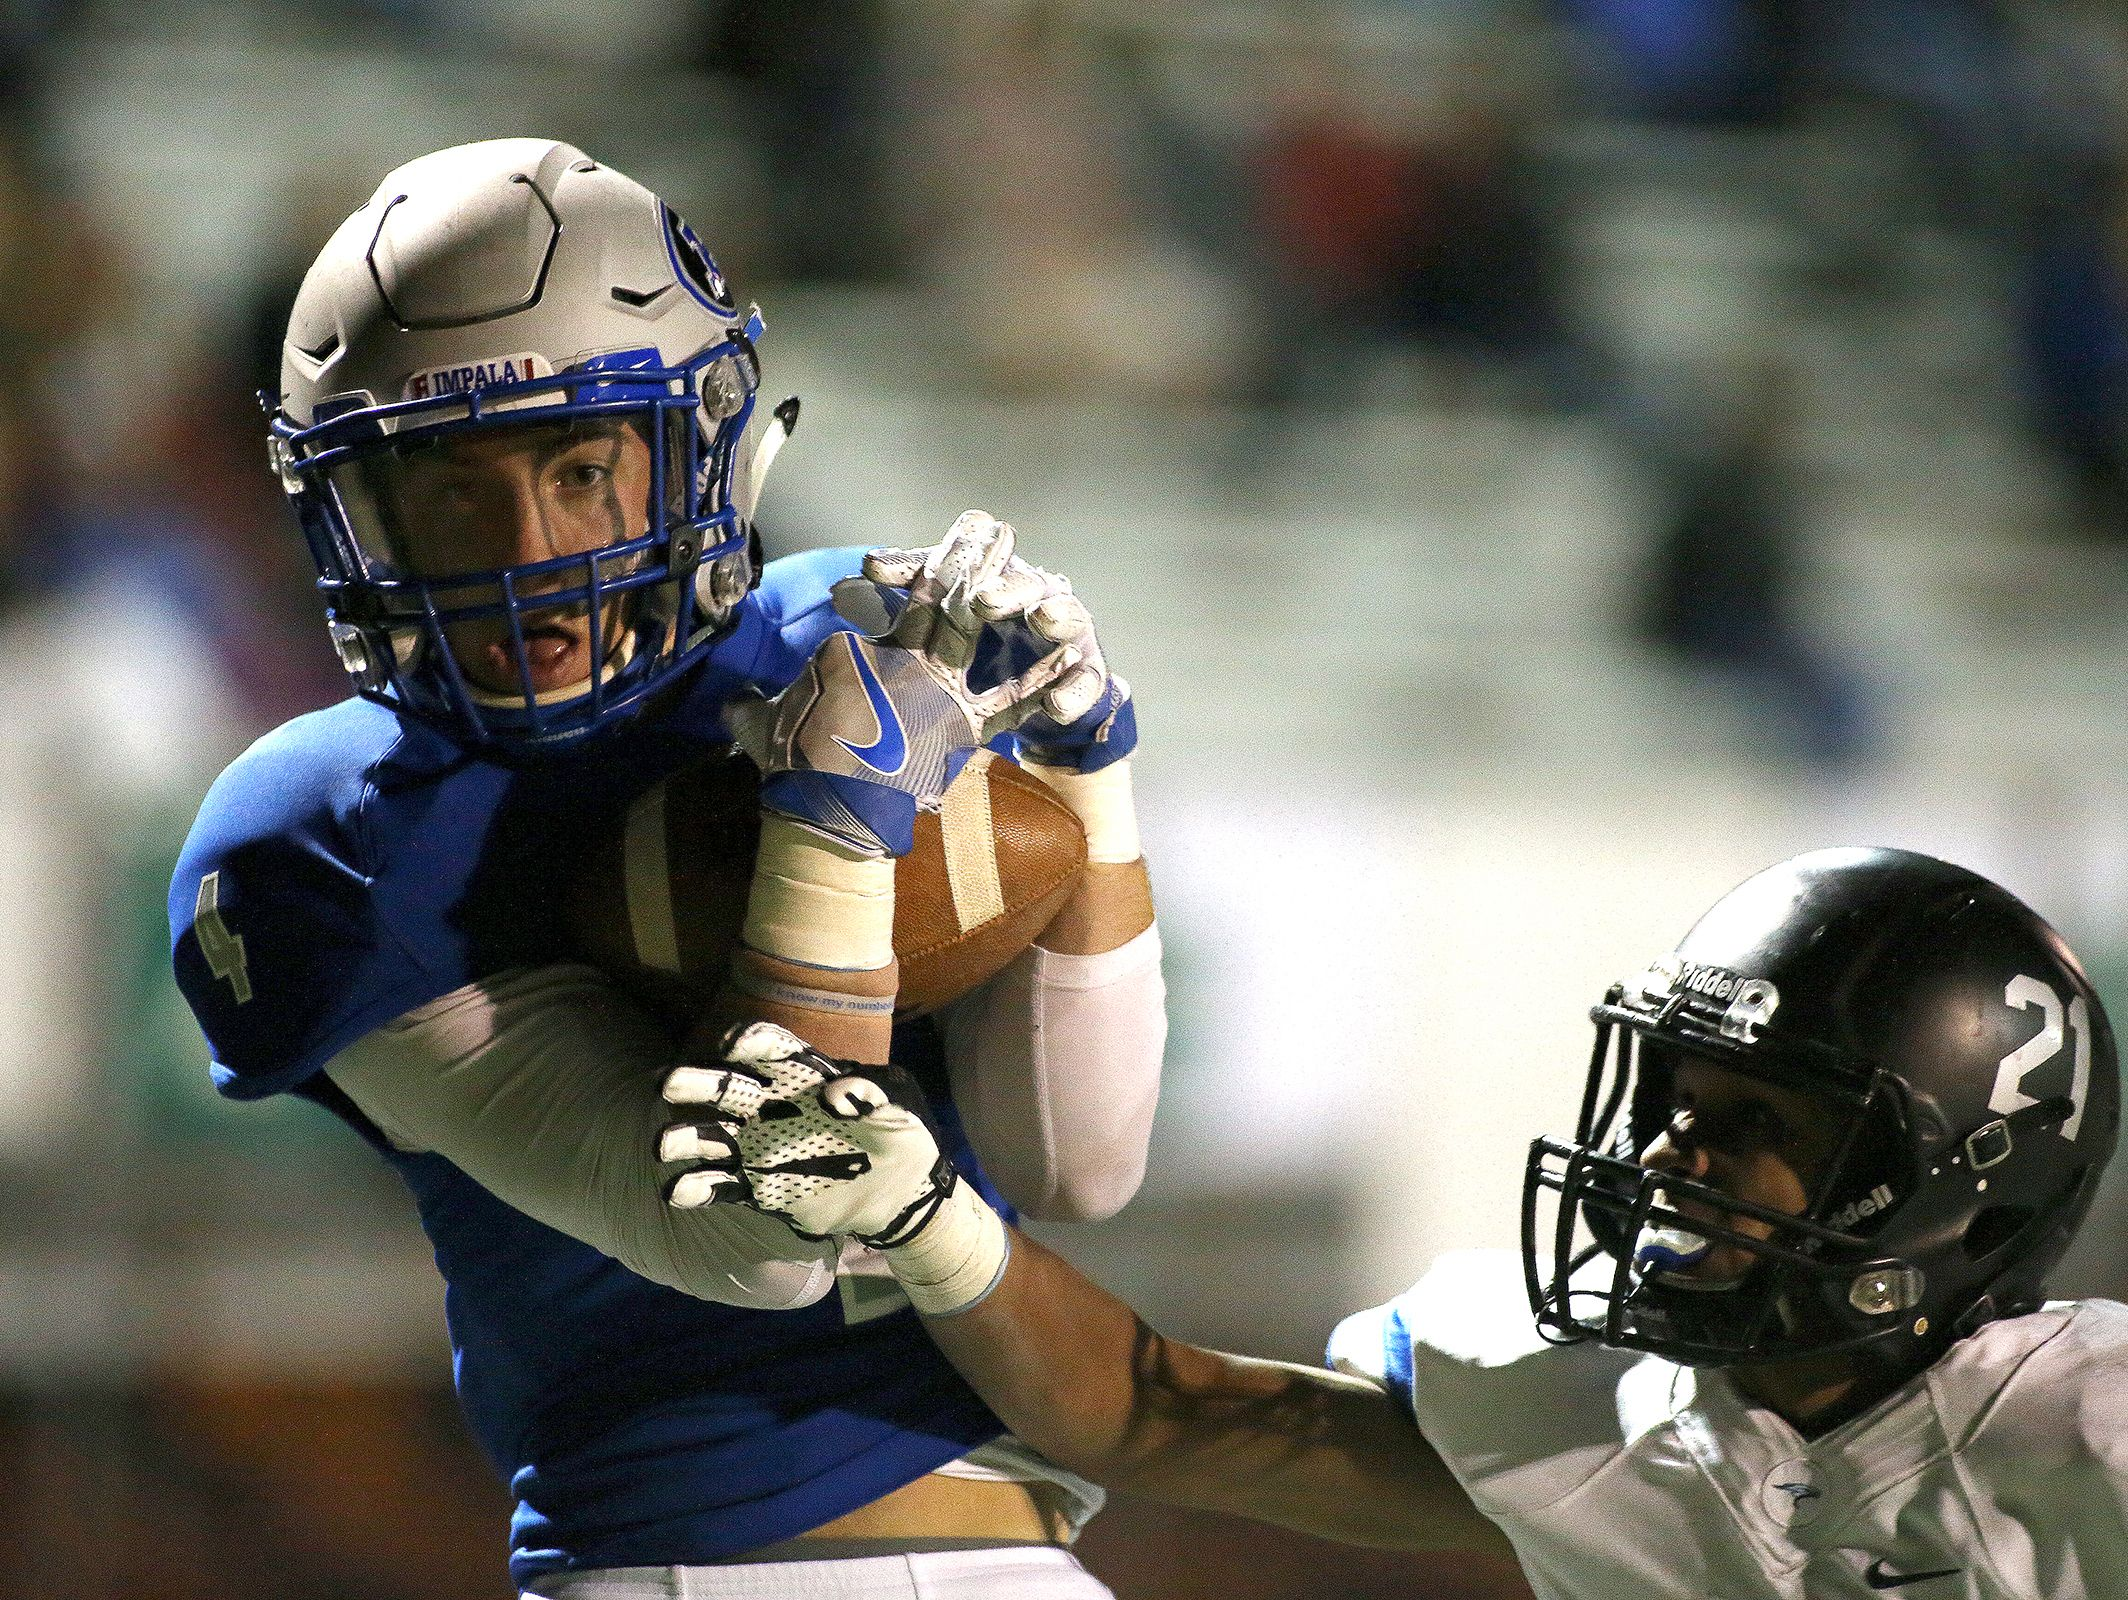 Poudre wide receiver Ryan Selby catches a touchdown pass during the Poudre High Impalas' 35-24 loss to the Highlands Ranch Falcons on Thursday.